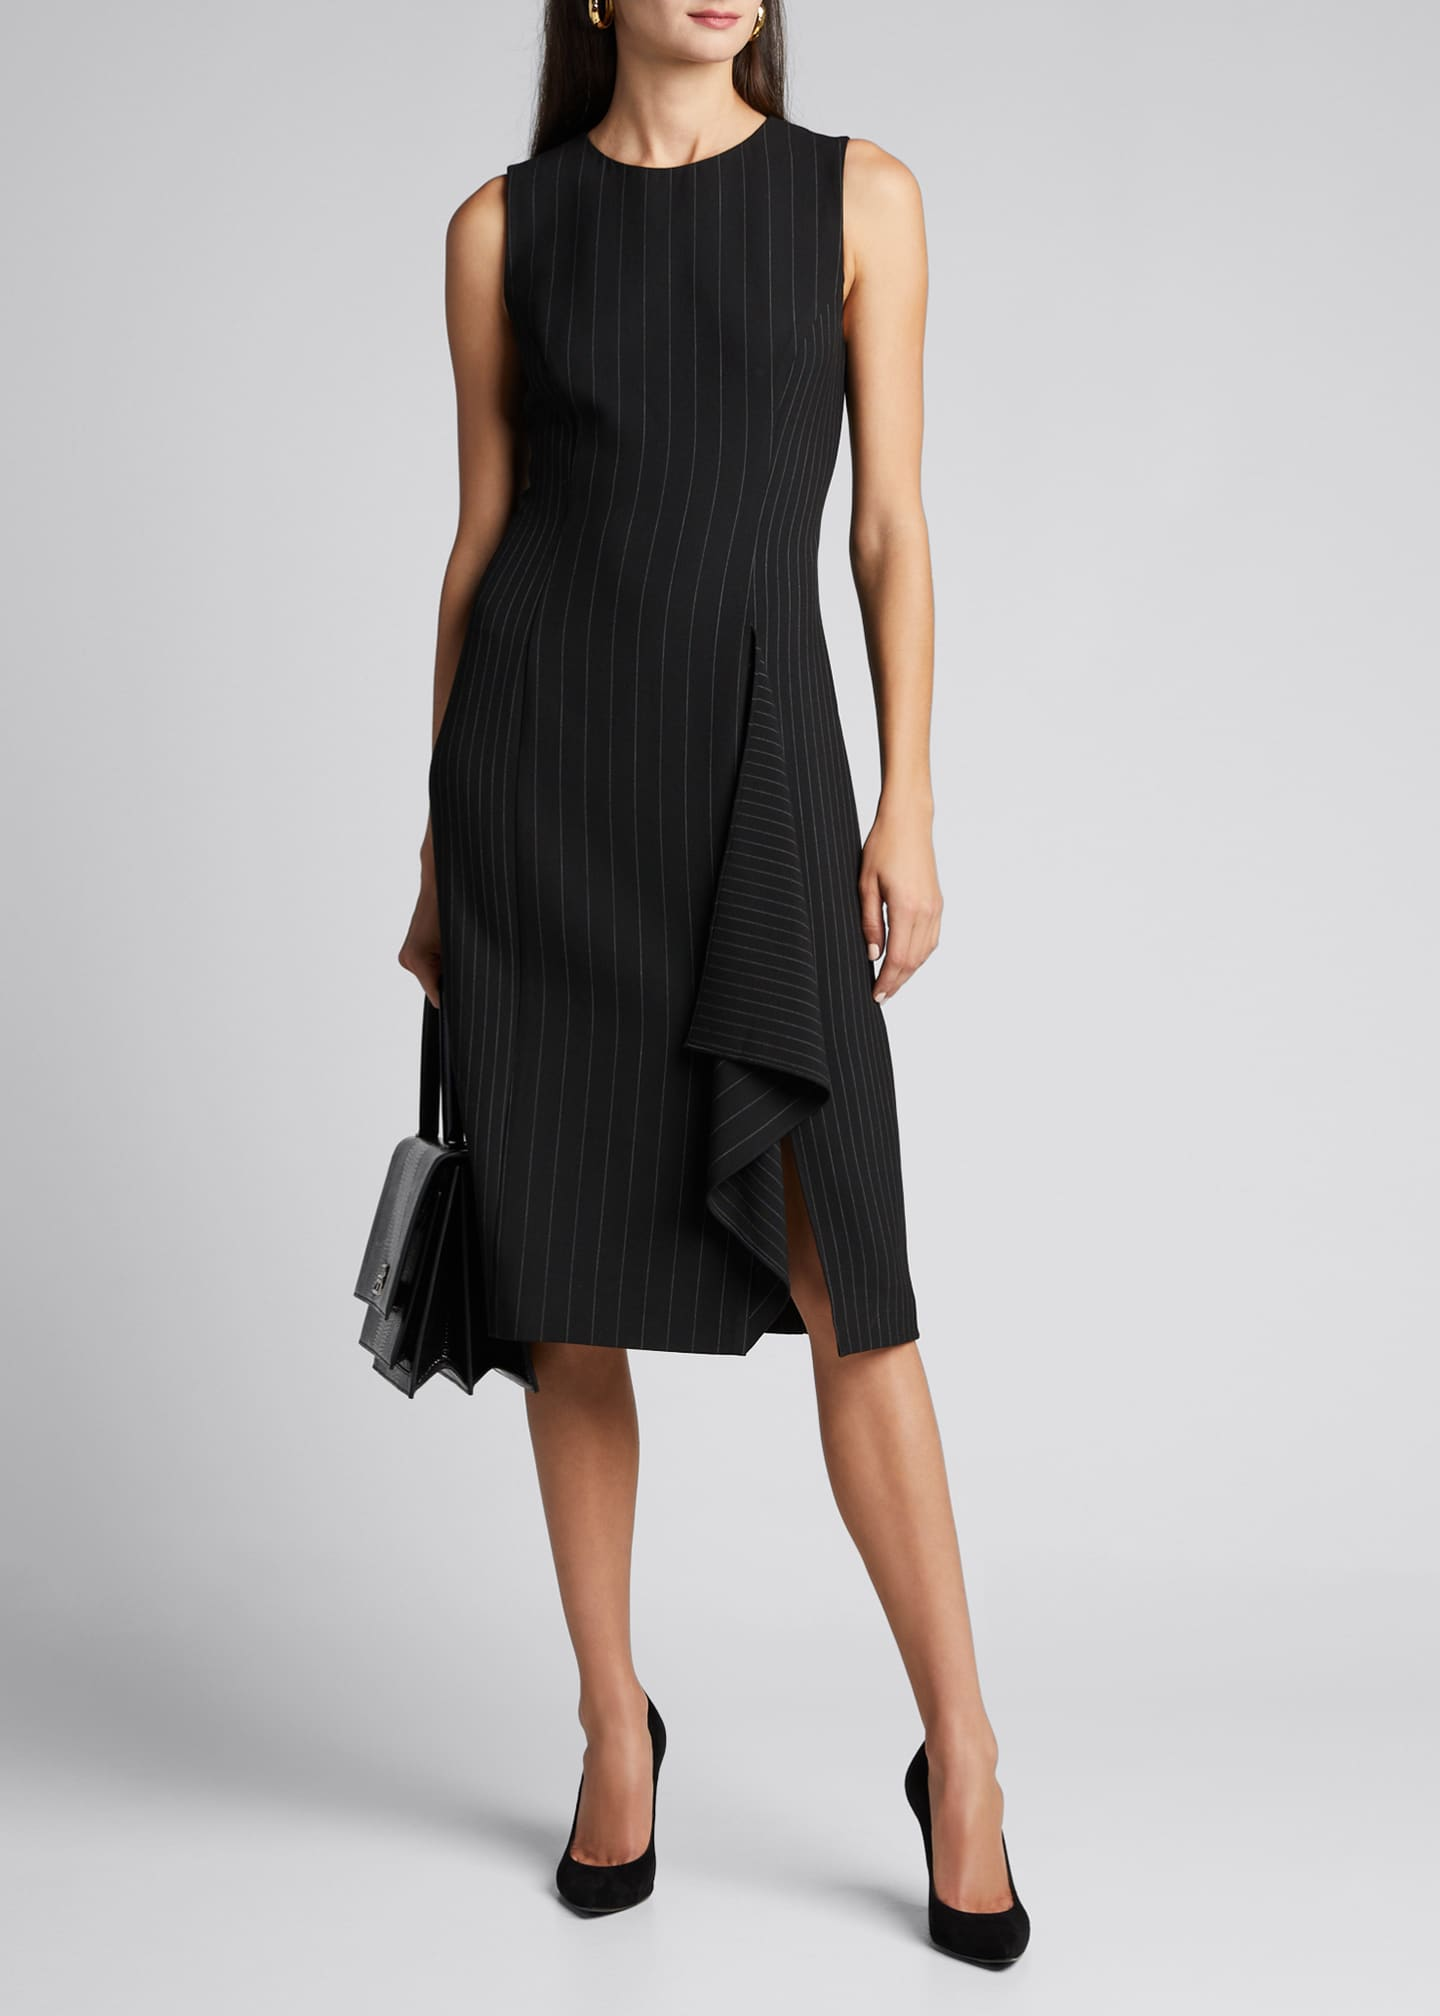 Diane von Furstenberg Elm Pinstripe Sleeveless Ruffle Dress